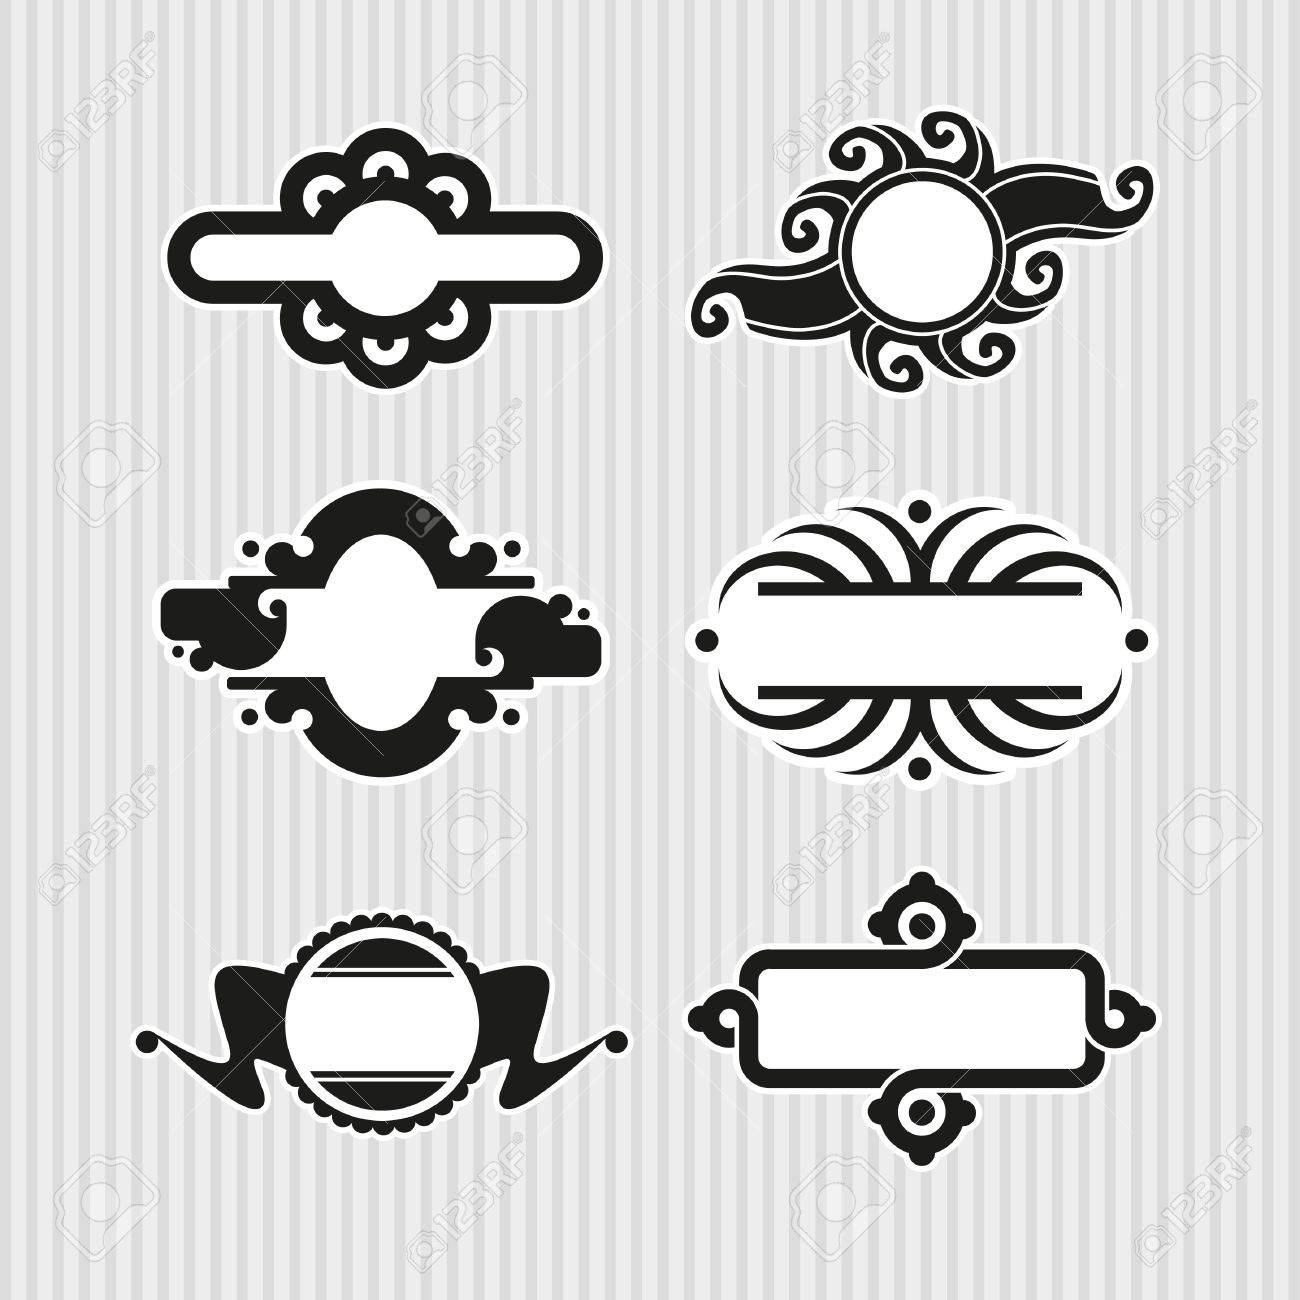 Medallions, Seals and Badges Stock Vector - 17121817